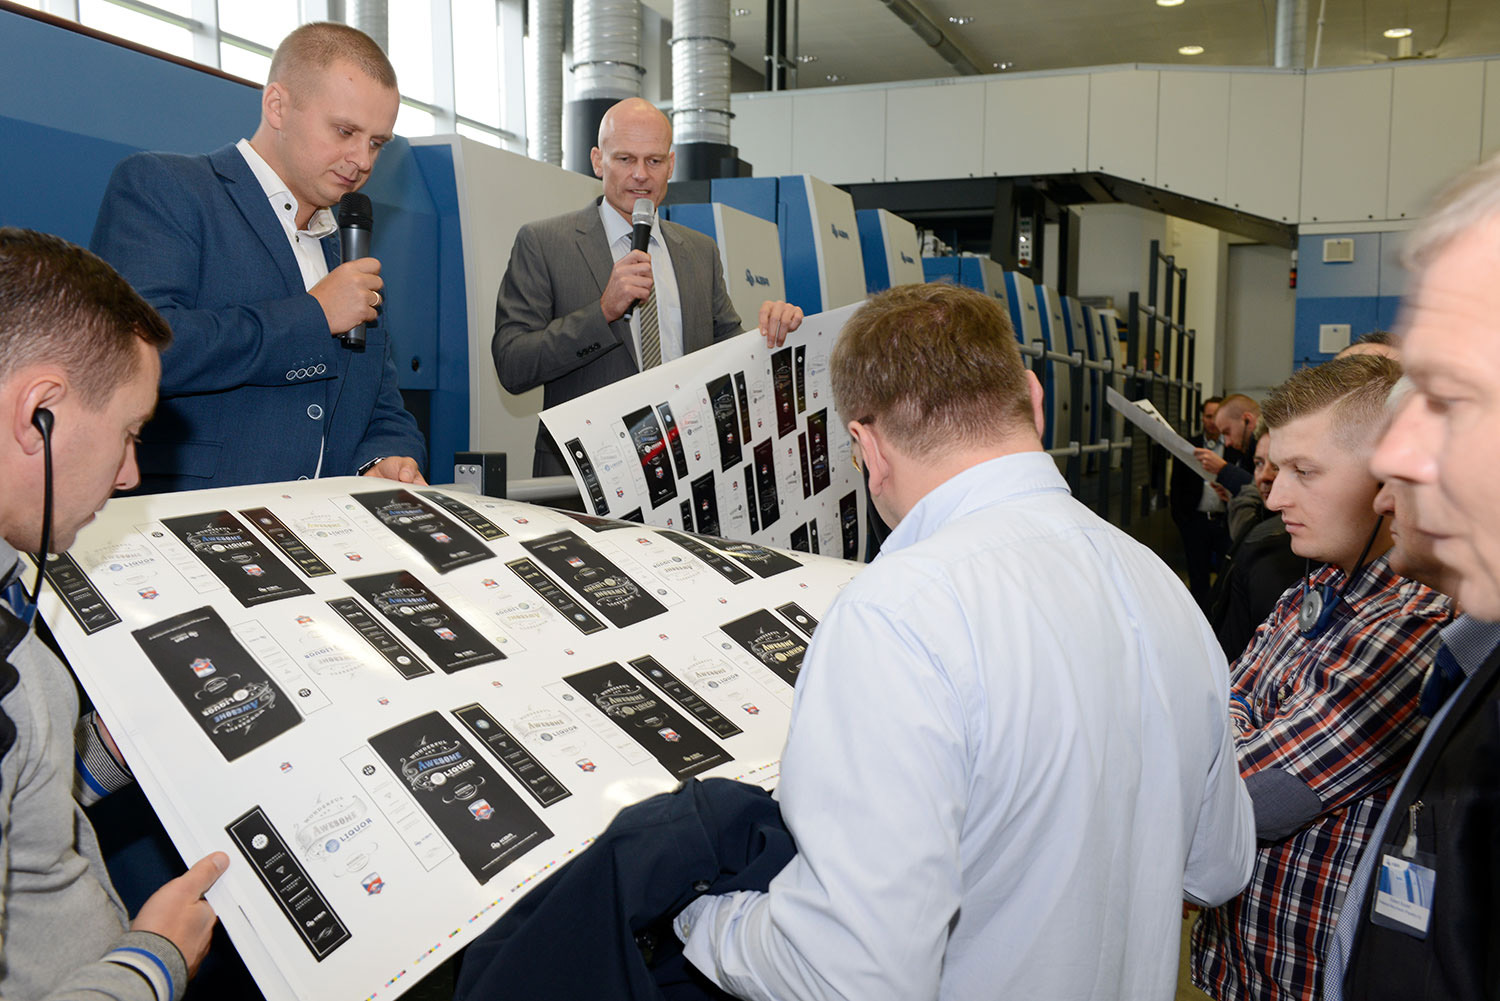 a-high-quality-packaging-product-was-printed-and-finished-during-a-live-demonstration-of-the-rapida-105-pro